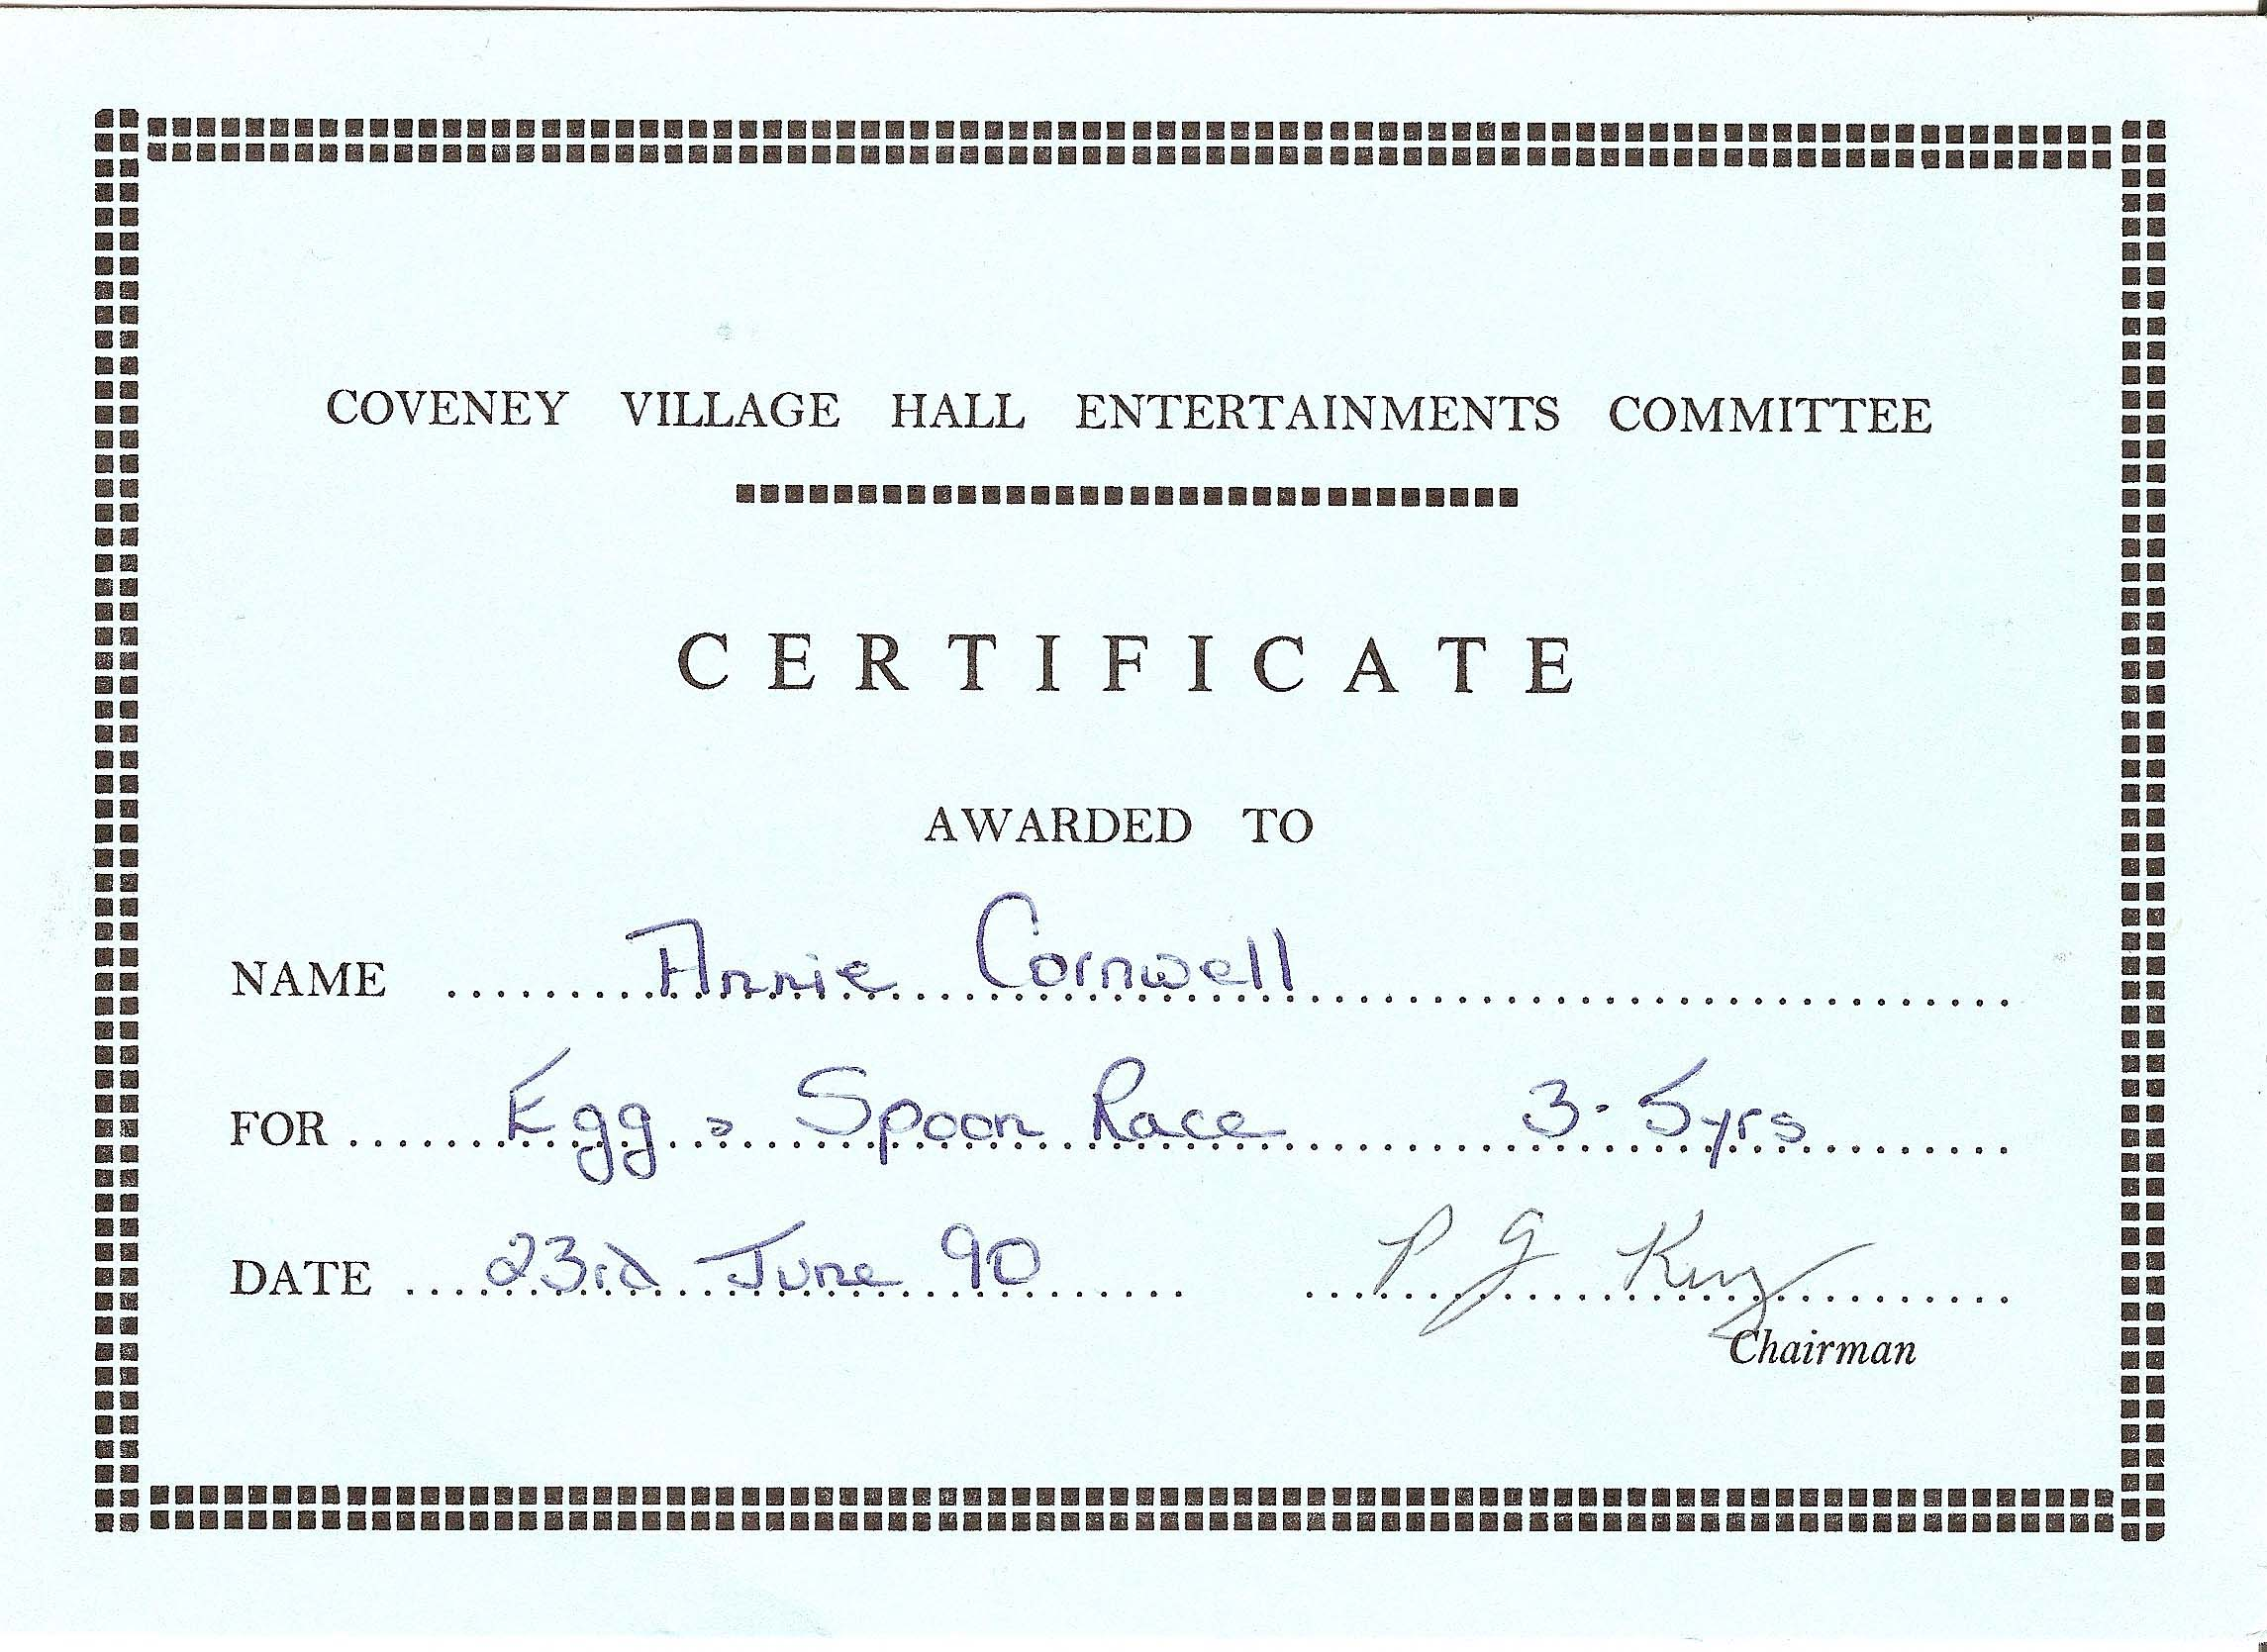 1990 23rd June Certificate For The Egg And Spoon Race For Coveney